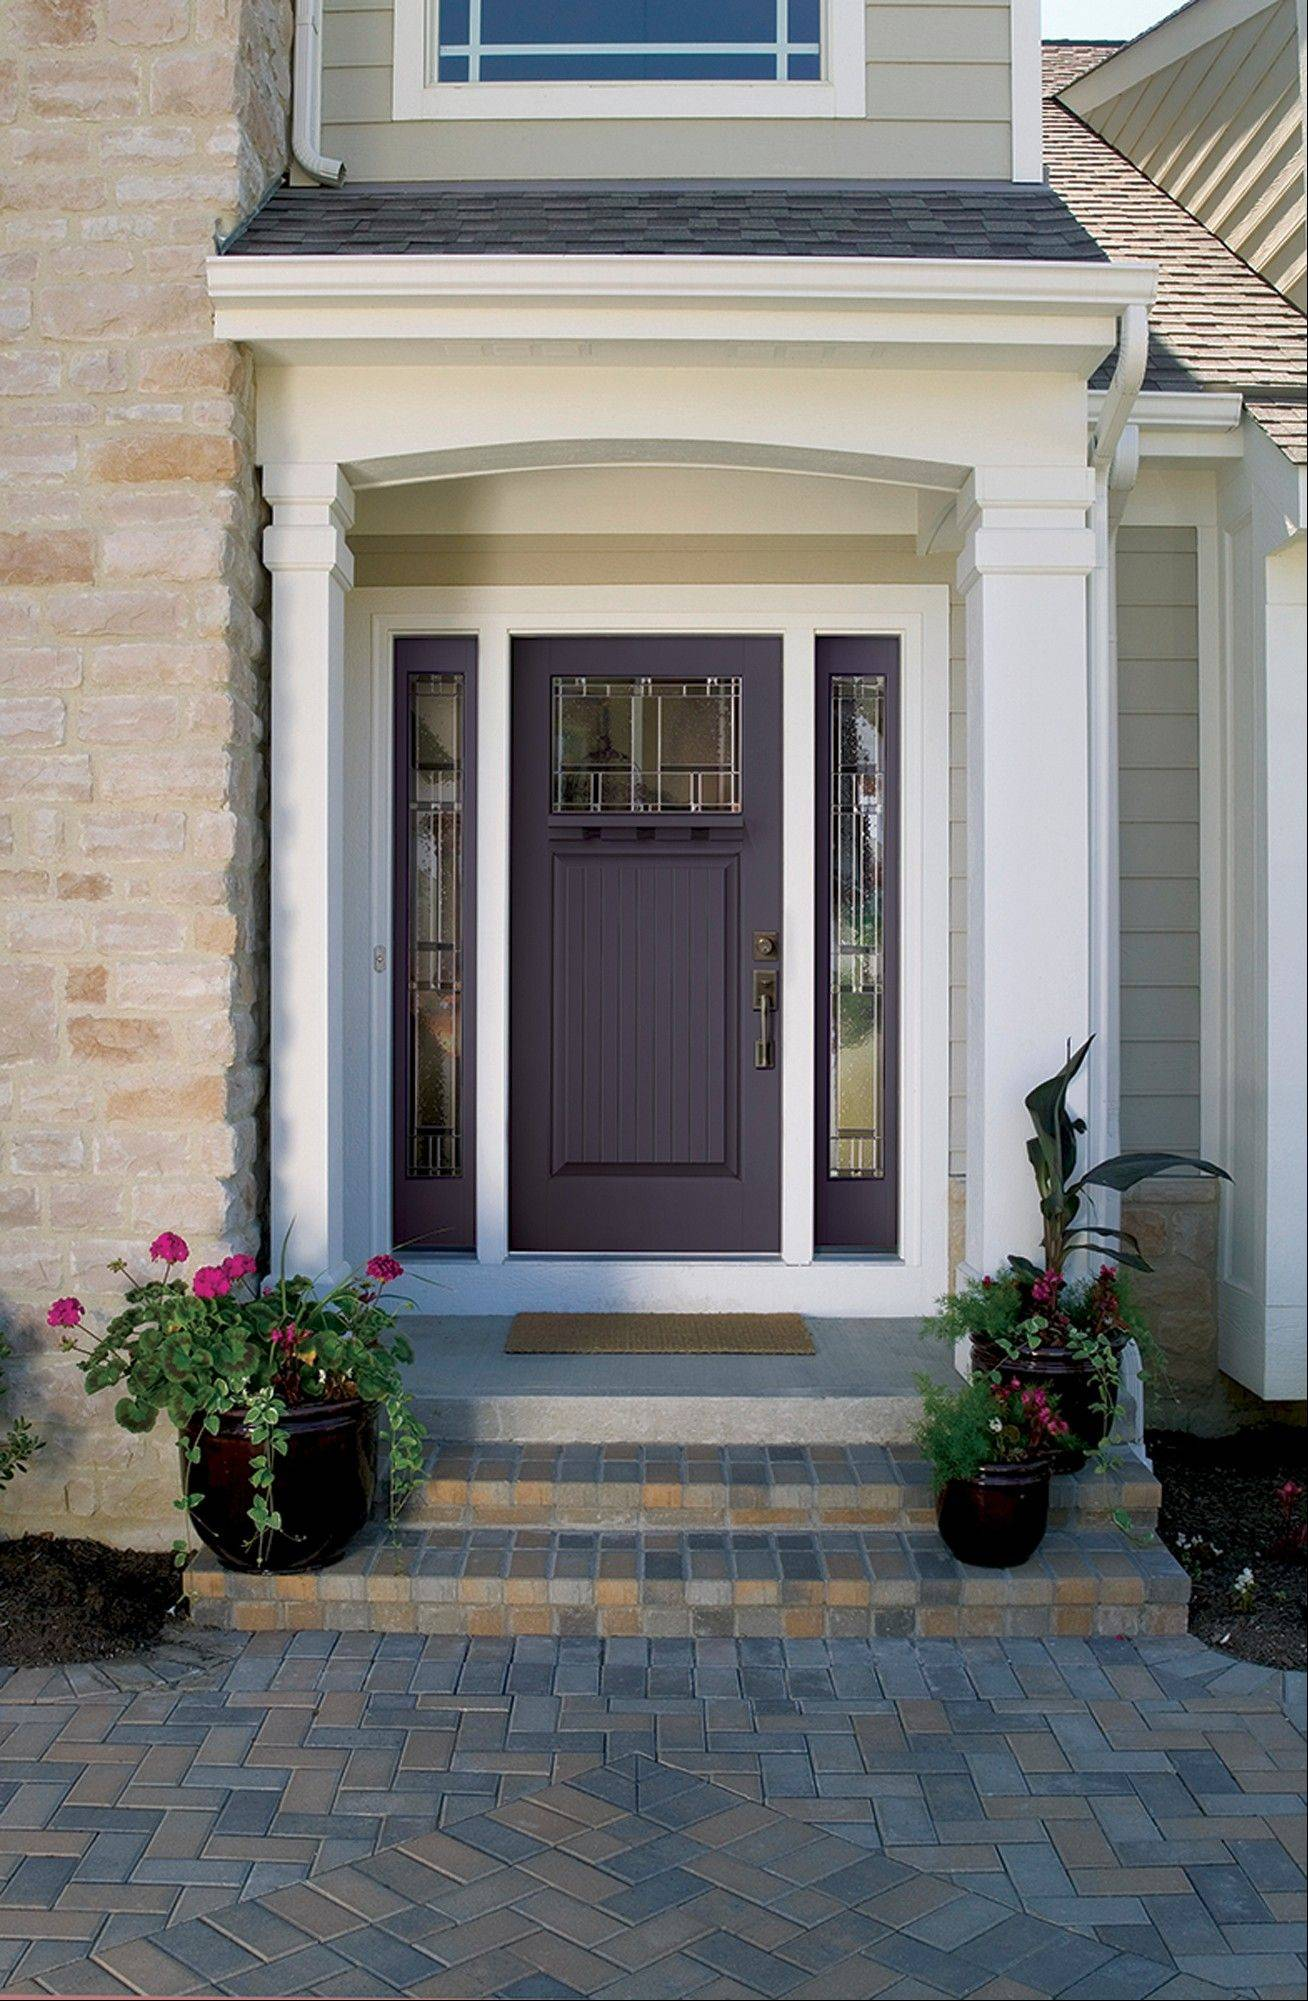 A quixotic plum front door with homeward glass. Color expert Kate Smith predicts we�ll see more homes with doors painted in tropical blues, energetic oranges and deep purples in 2014.